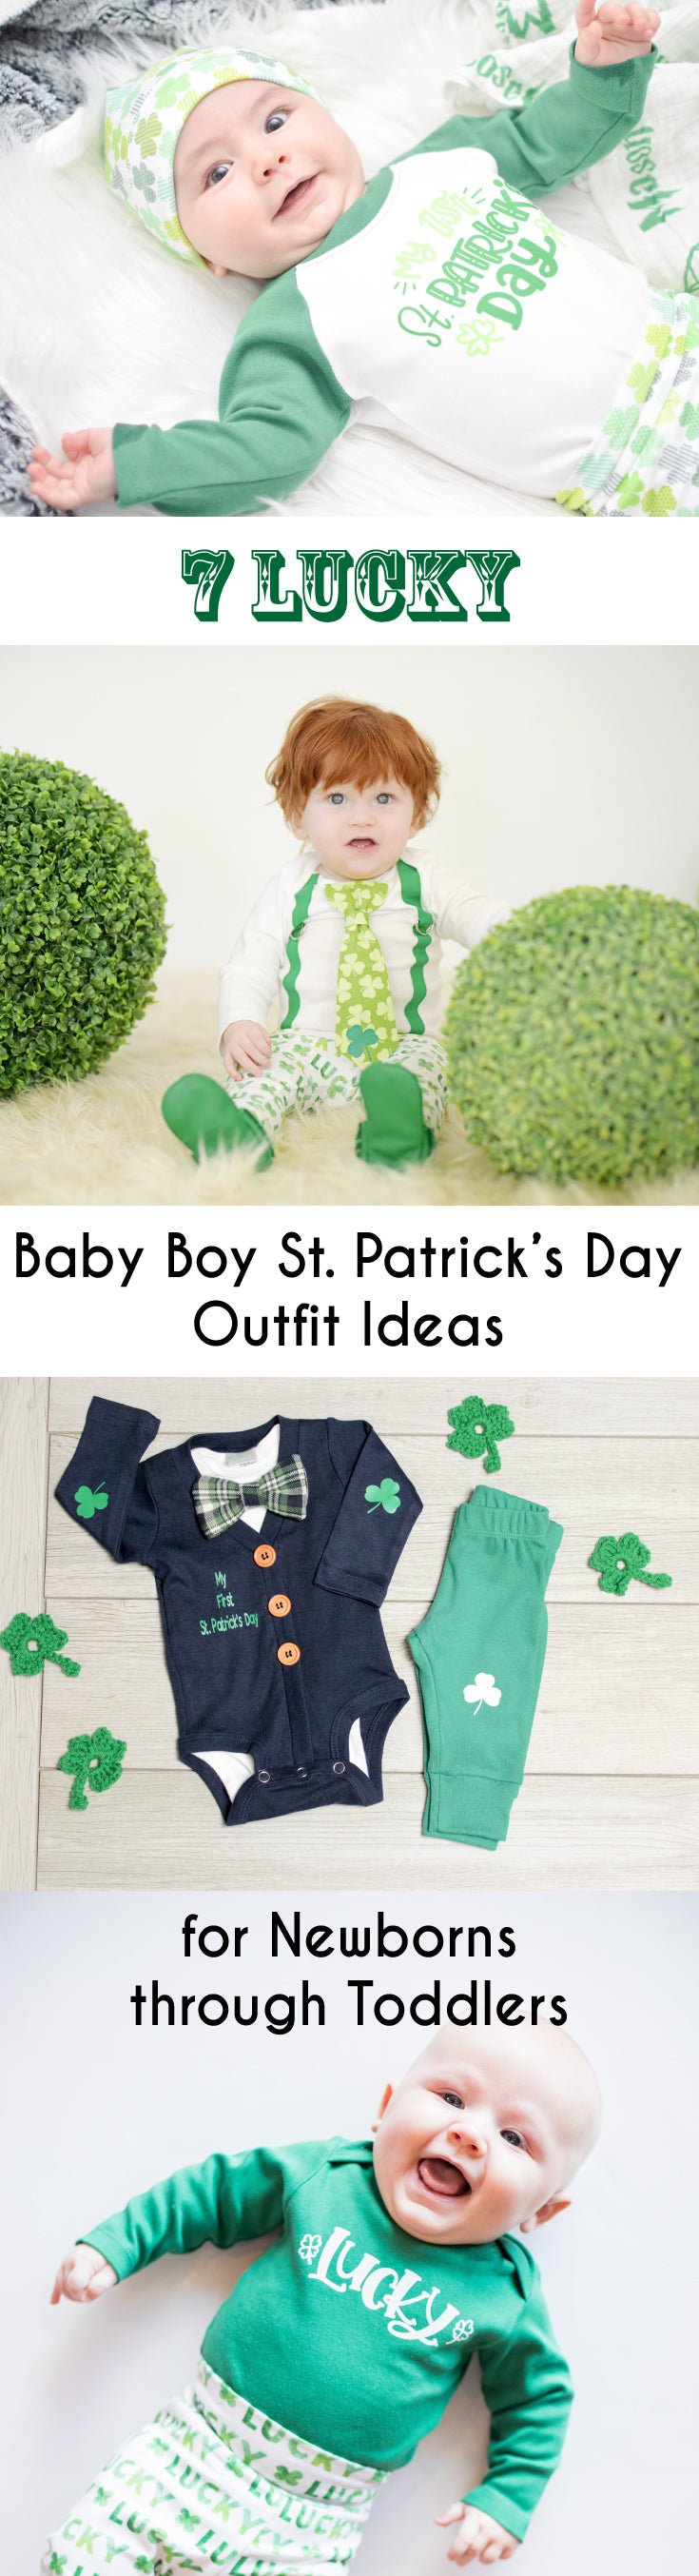 9dd3ee30a 7 Lucky Baby Boy St. Patrick's Day Outfit Ideas for Newborns through T